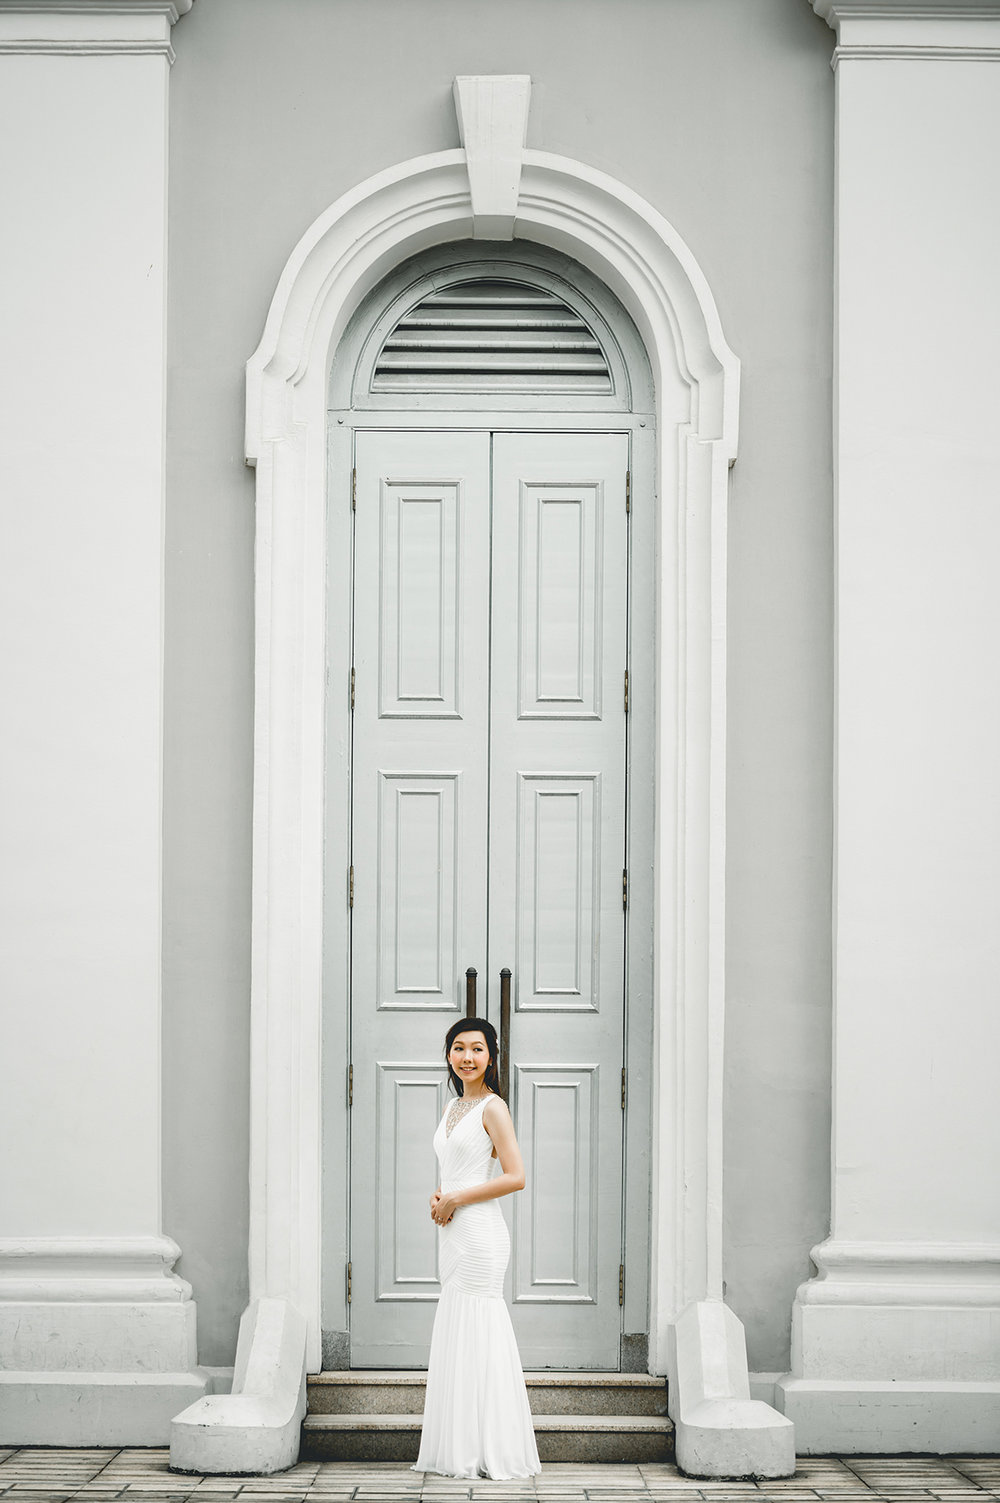 Prewedding National Museum 00006a.JPG